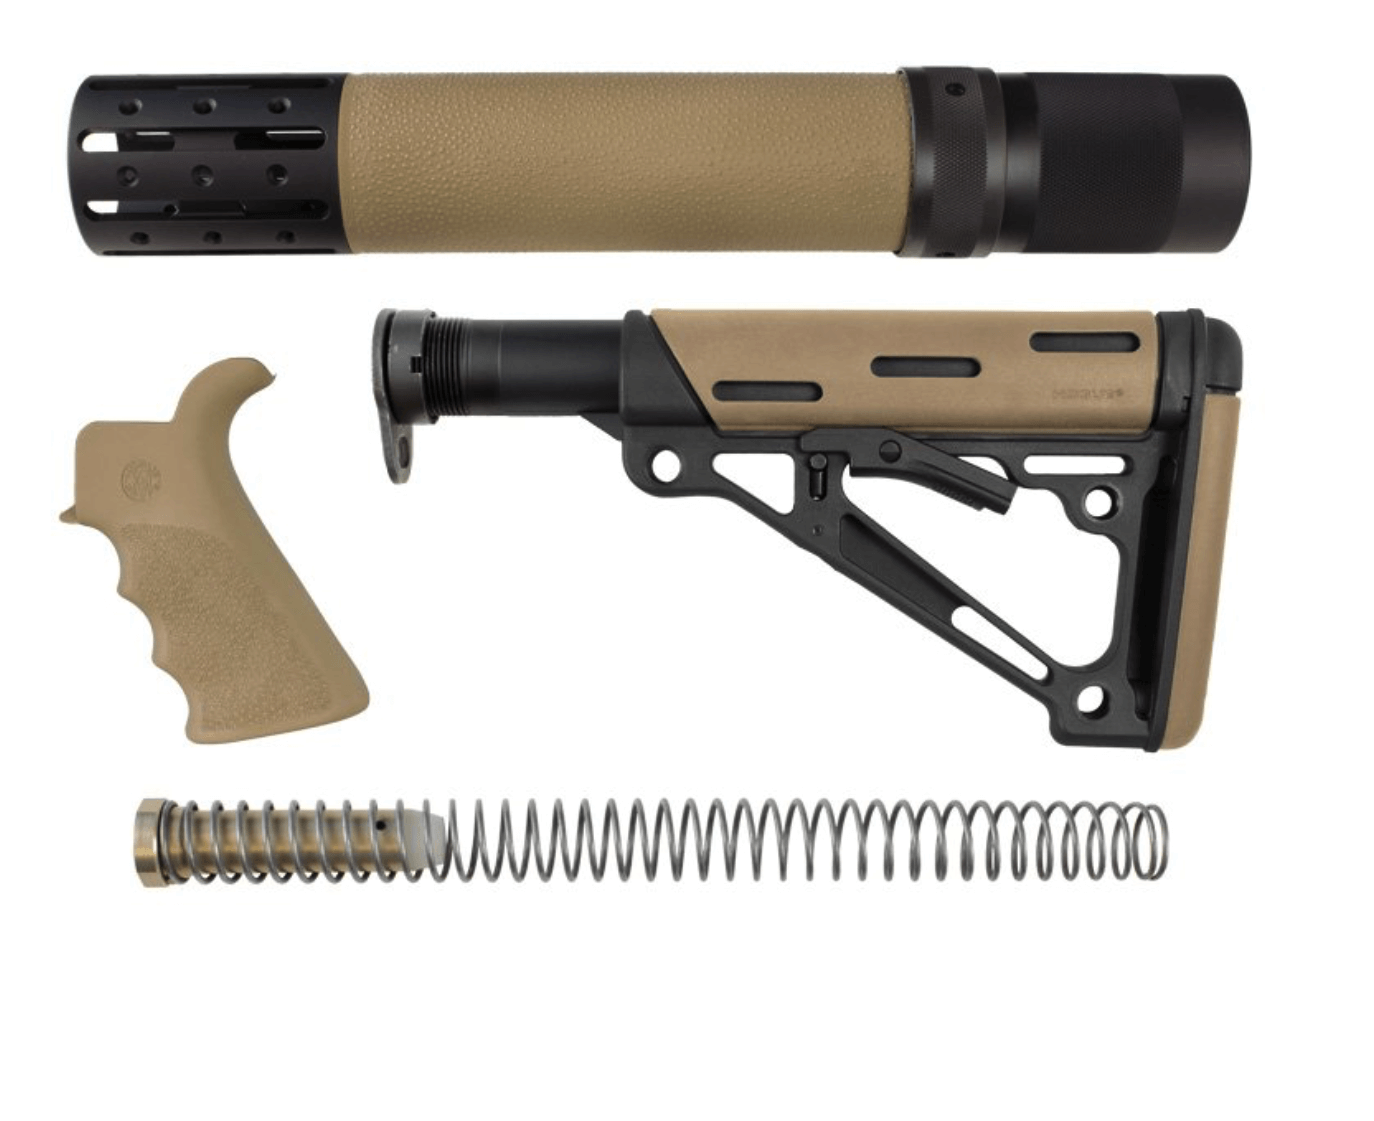 AR-15 Kit – Finger Groove Beavertail Grip, Rifle Length Forend with Accessories and OverMolded Collapsible Buttstock – Includes Mil-Spec Buffer Tube and Hardware (Flat Dark Earth)